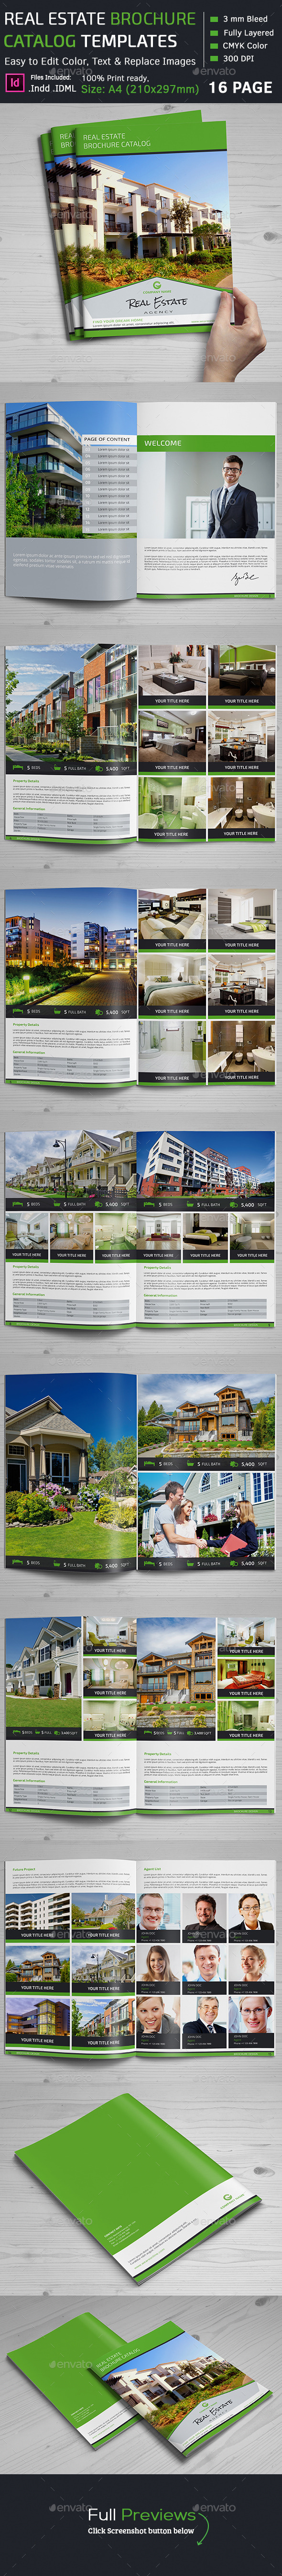 Real Estate brochure Catalog - Catalogs Brochures